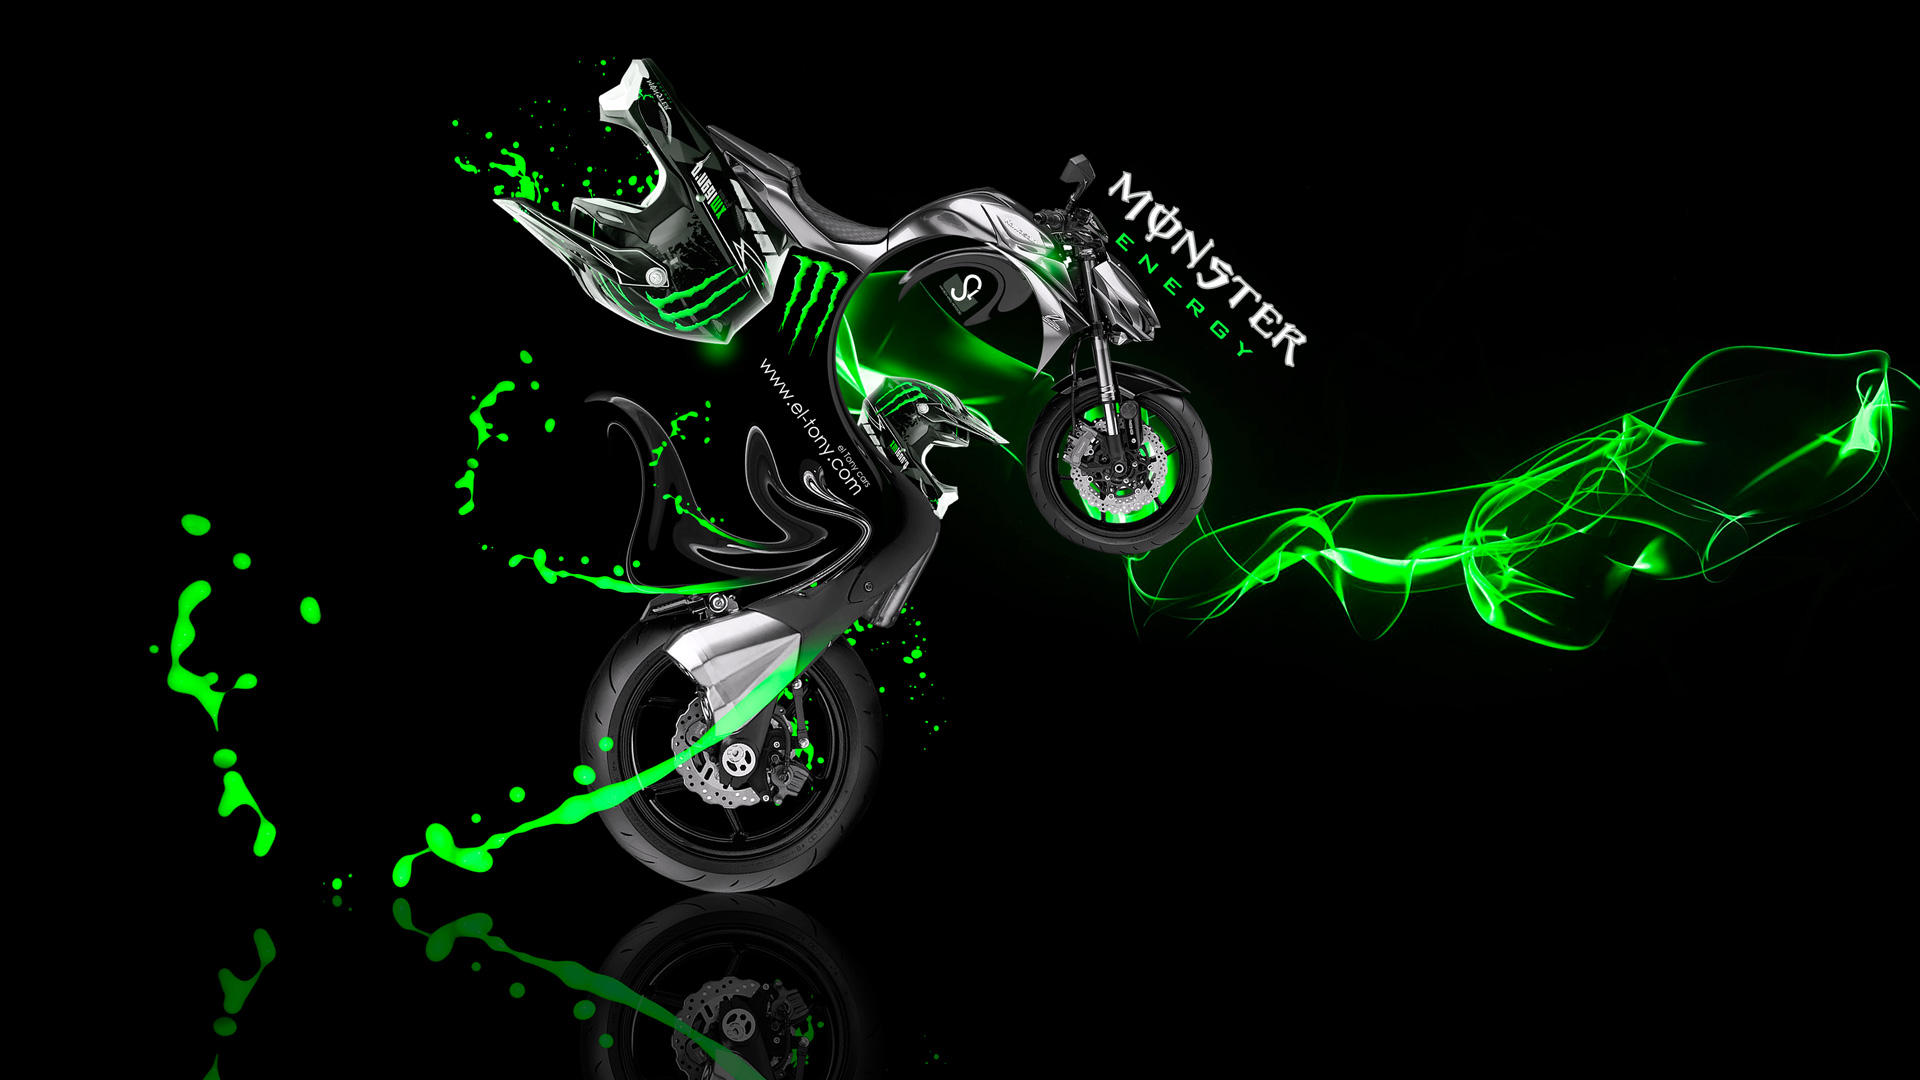 71 Kawasaki Wallpaper On Wallpapersafari